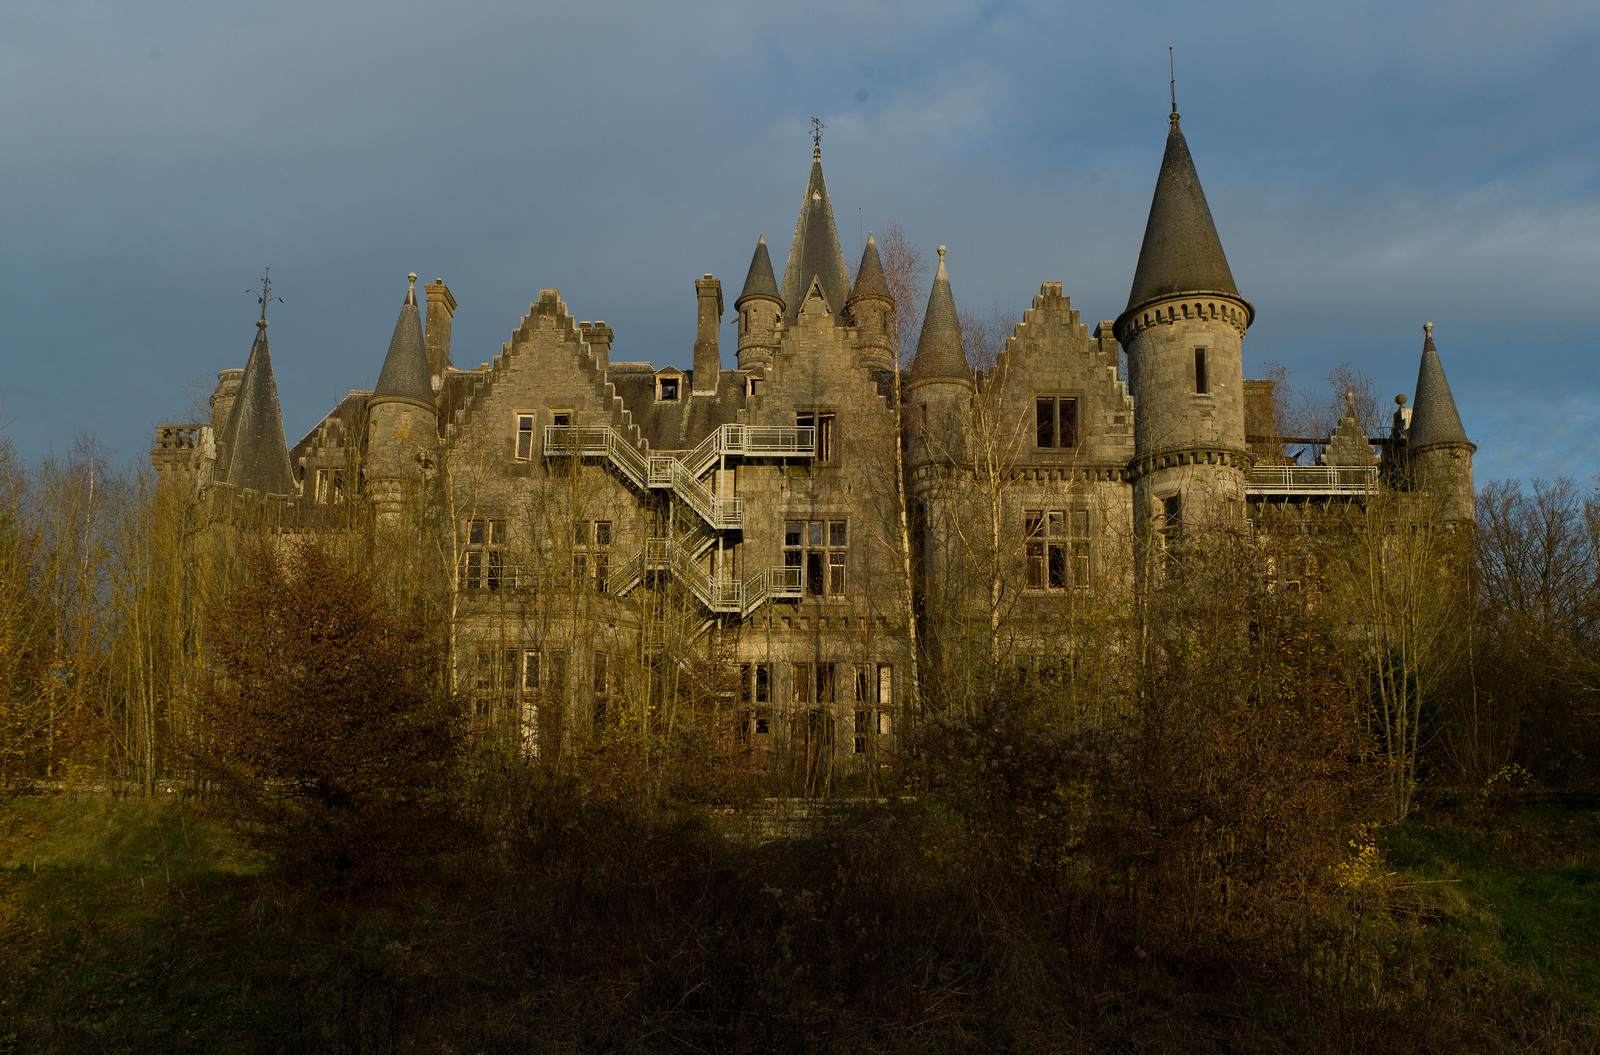 castle miranda The Abandoned Castle Miranda, Belgium